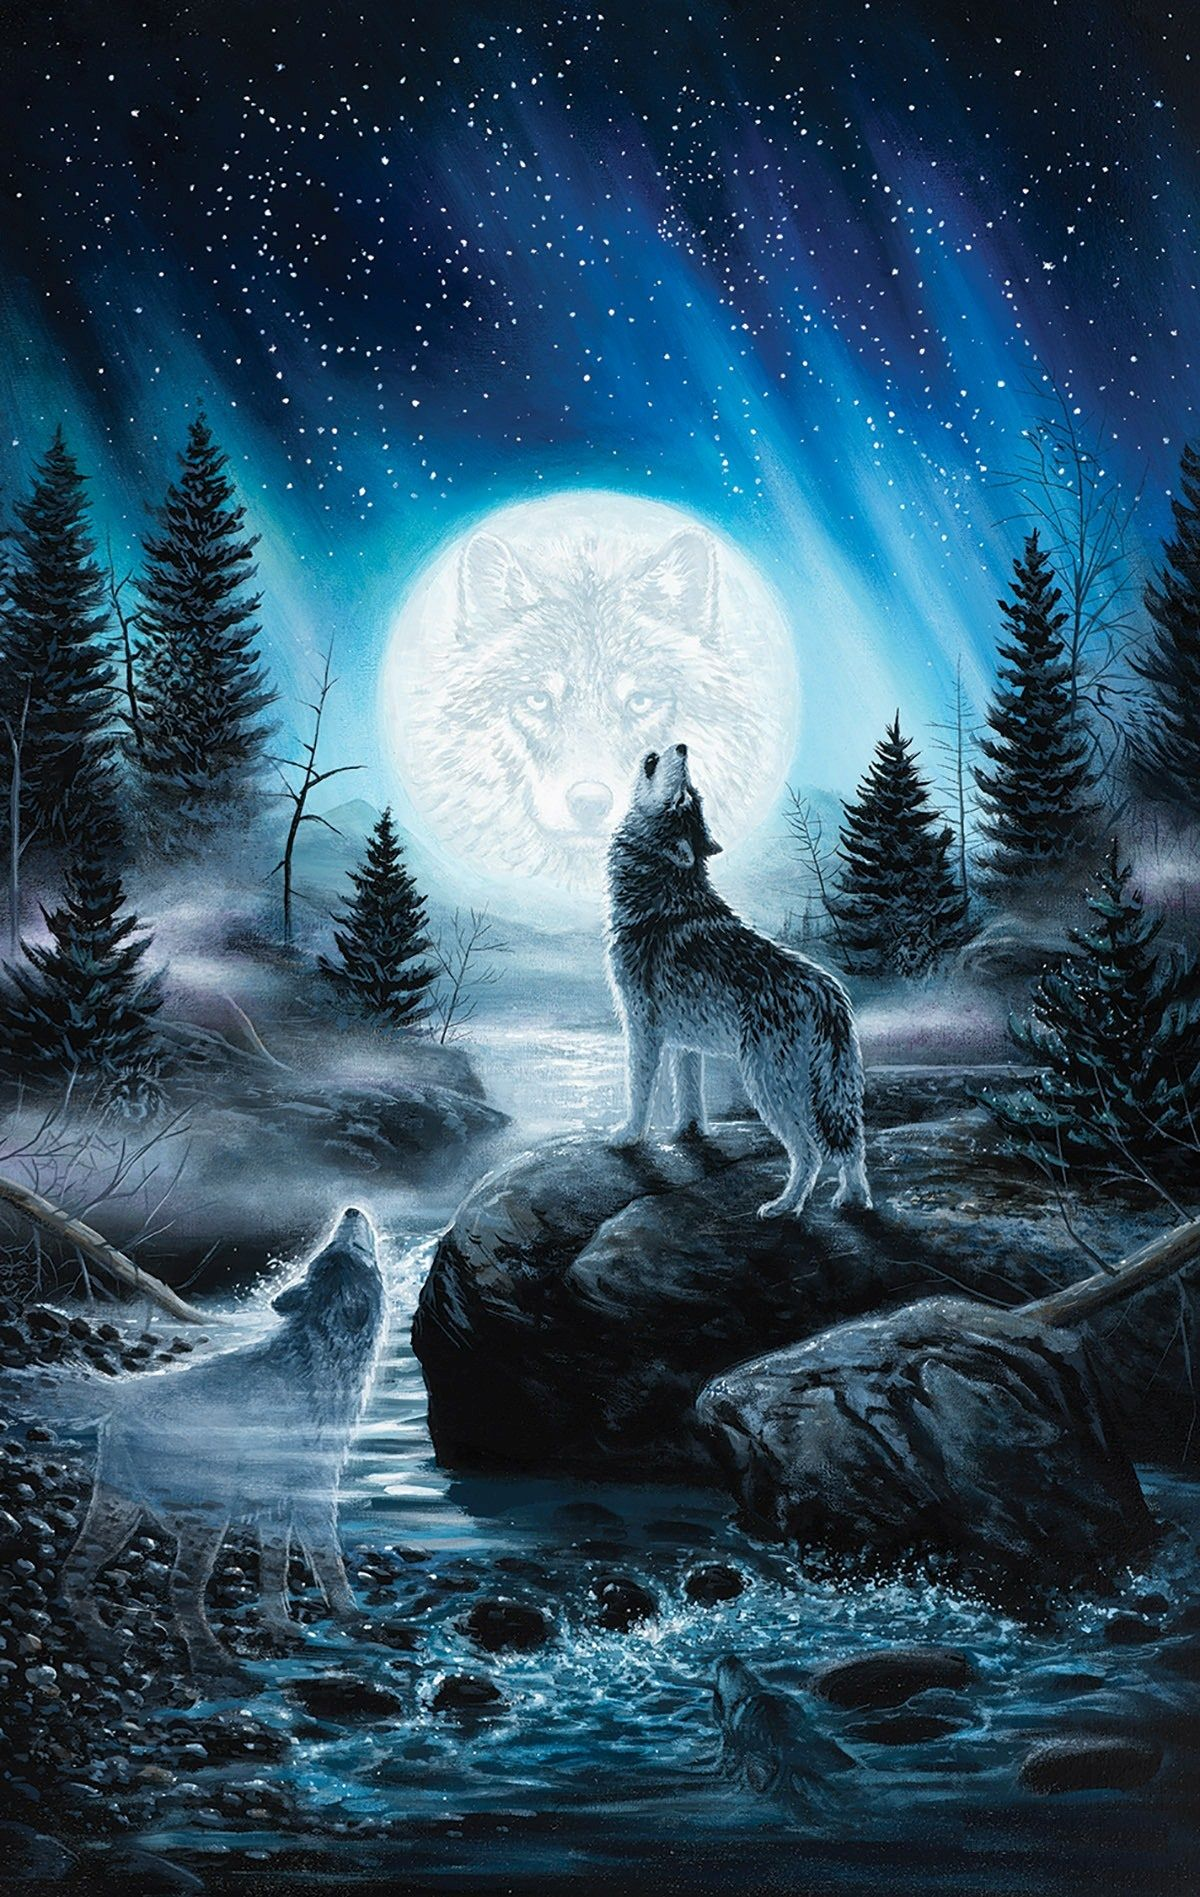 Howling Wolf Wallpaper iPhone | iPhoneWallpapers | Wolf wallpaper, Wolf painting, Fantasy wolf